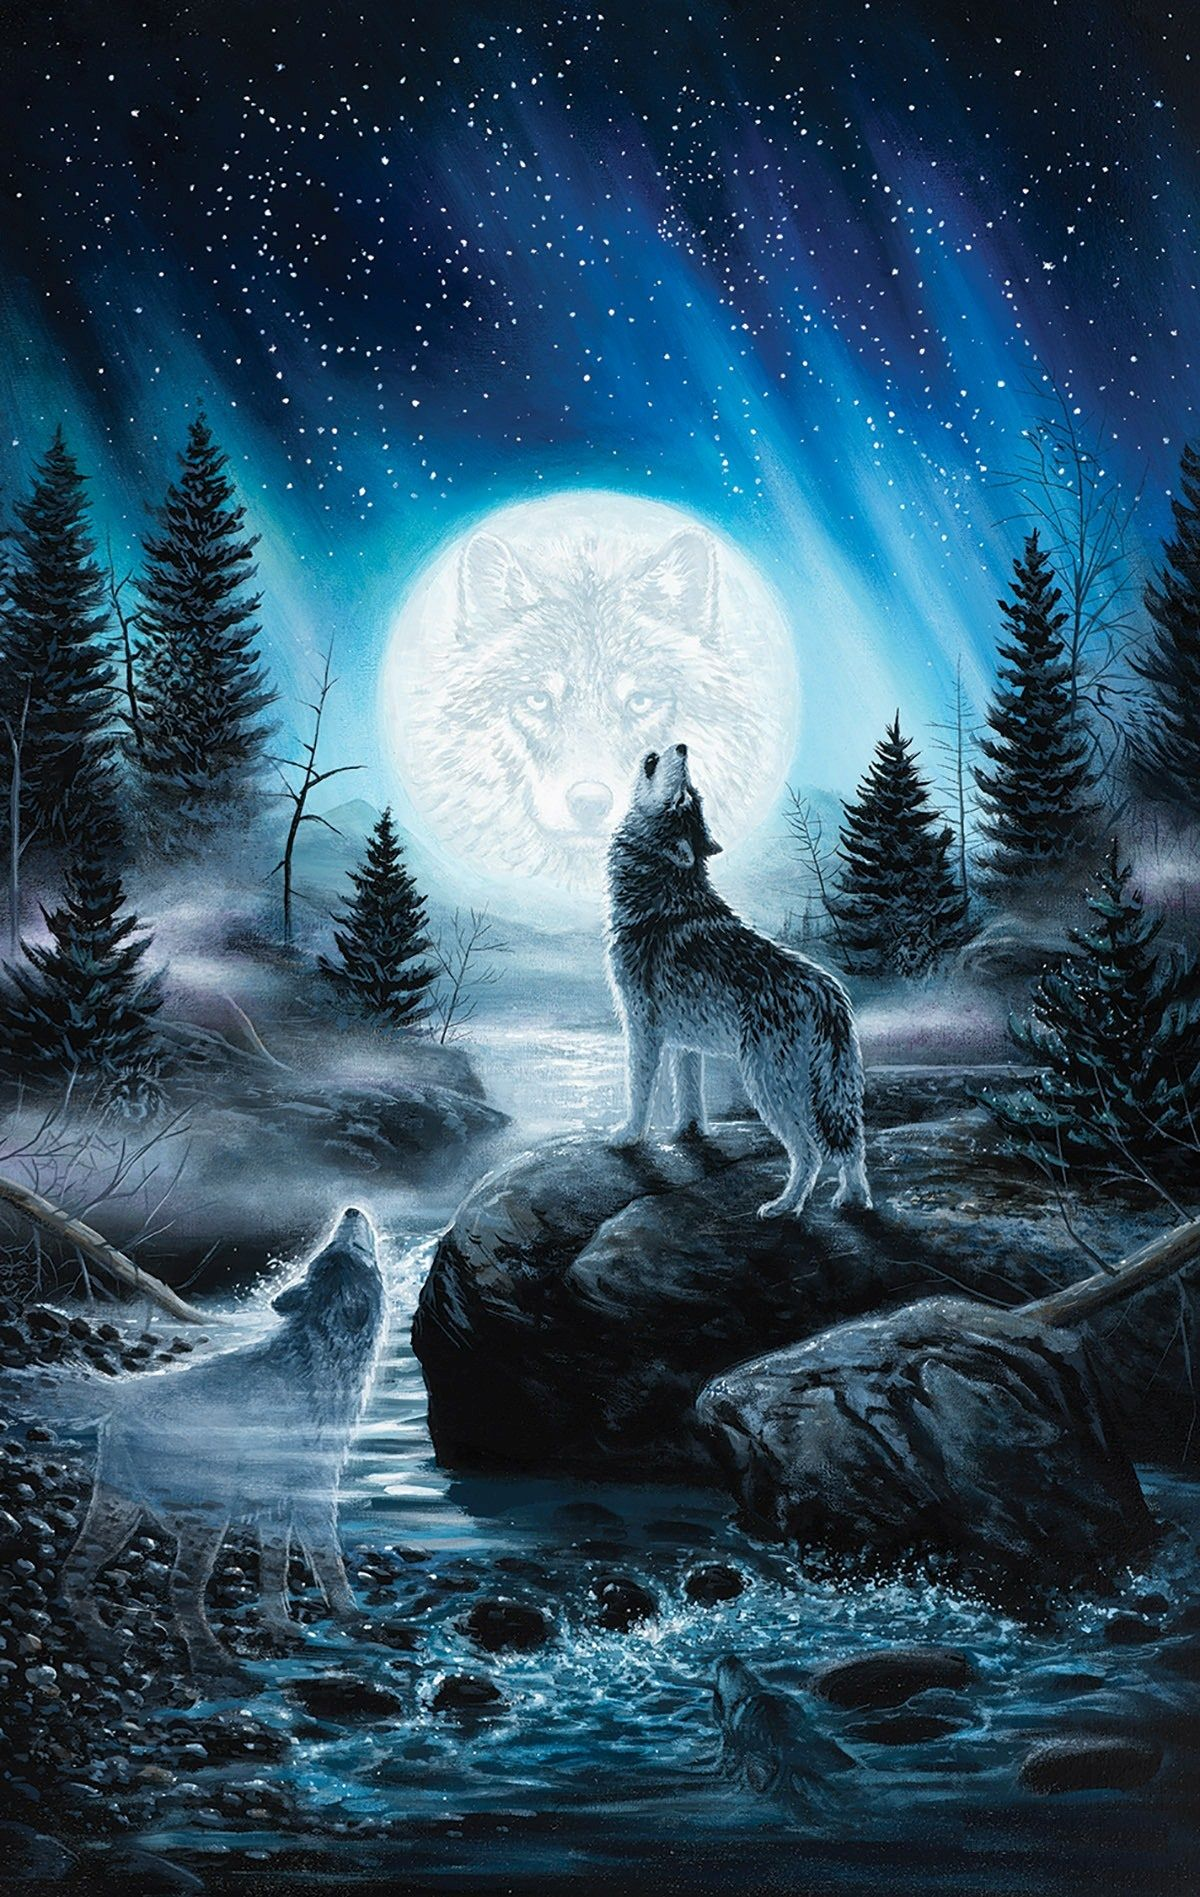 Howling Wolf Wallpaper iPhone | iPhoneWallpapers | Wolf wallpaper, Wolf painting, Fantasy wolf